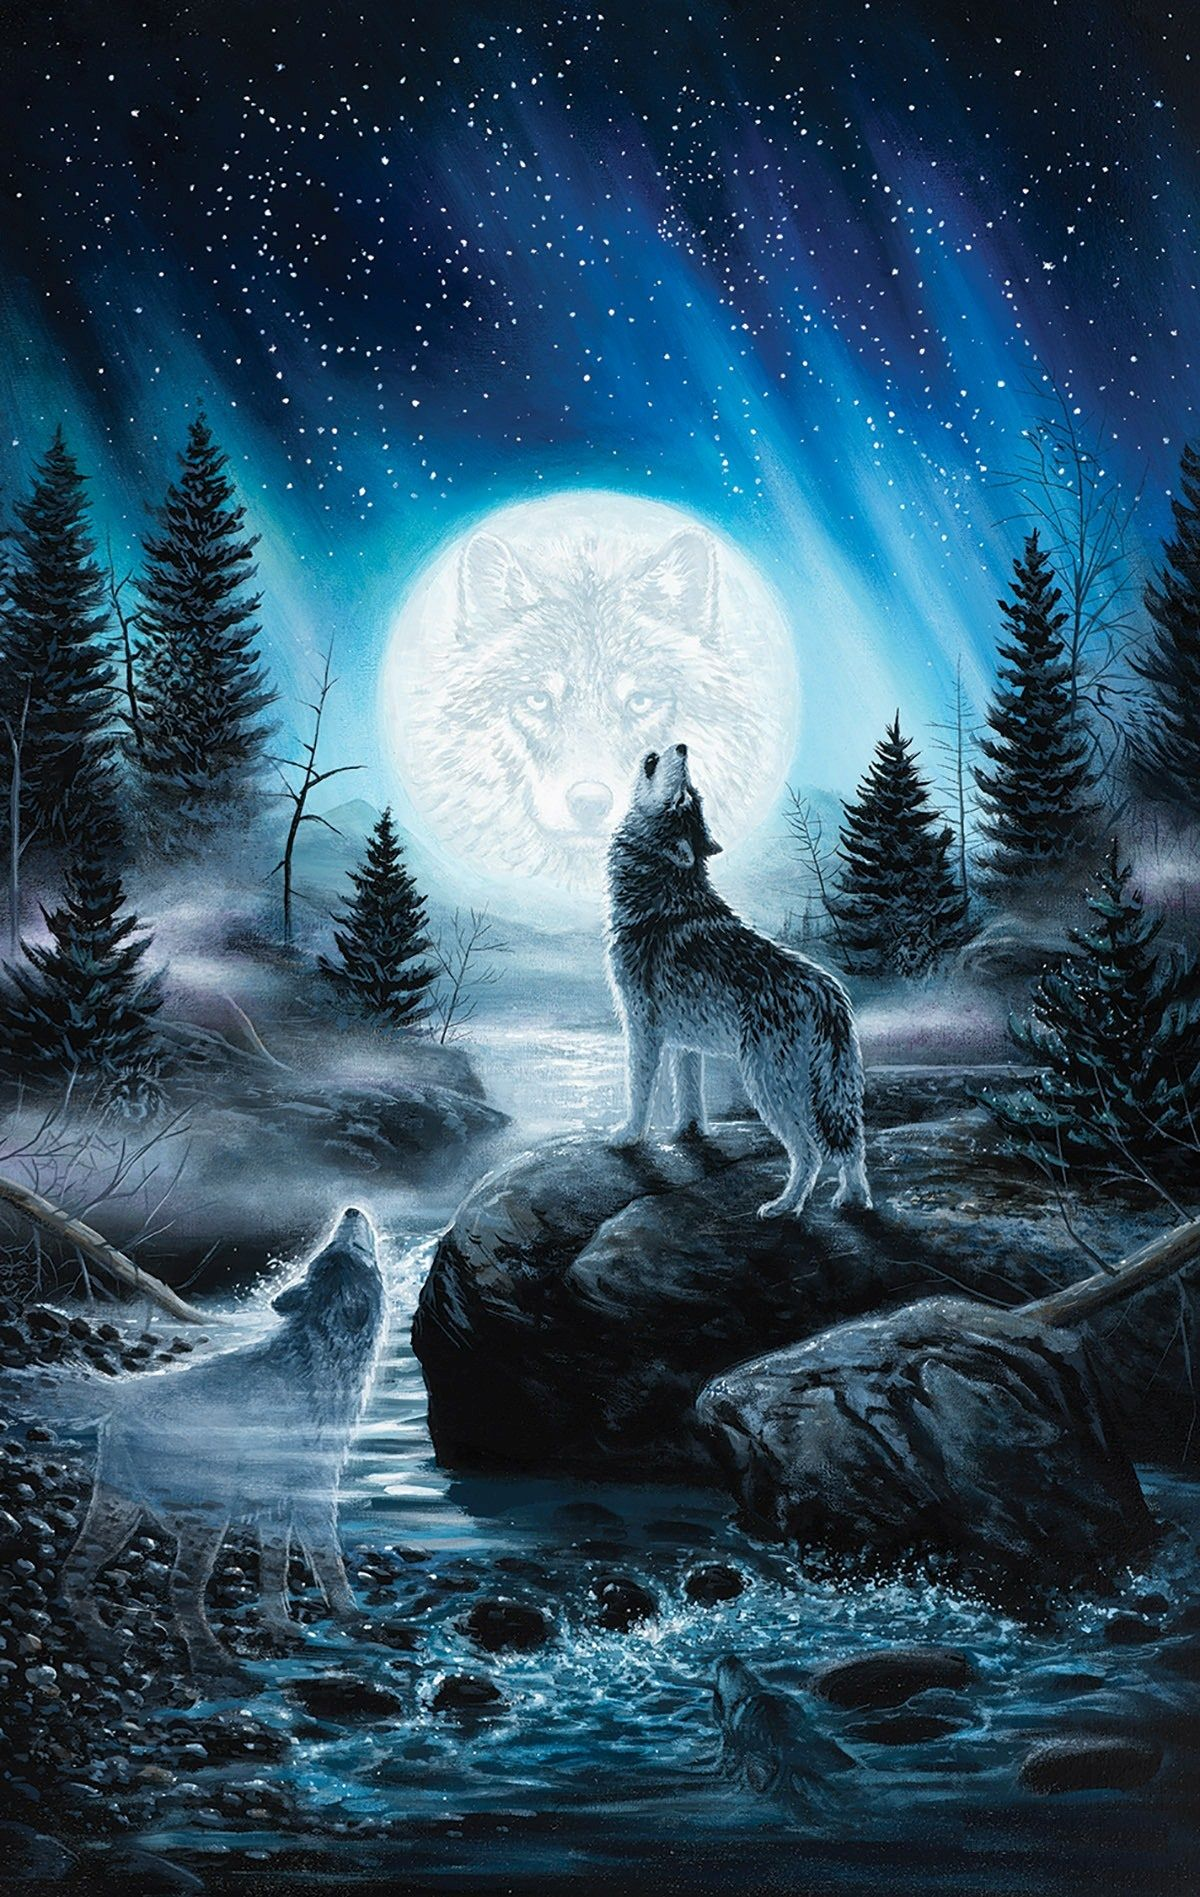 Howling Wolf Wallpaper iPhone | iPhoneWallpapers | Wolf wallpaper, Wolf painting, Fantasy wolf